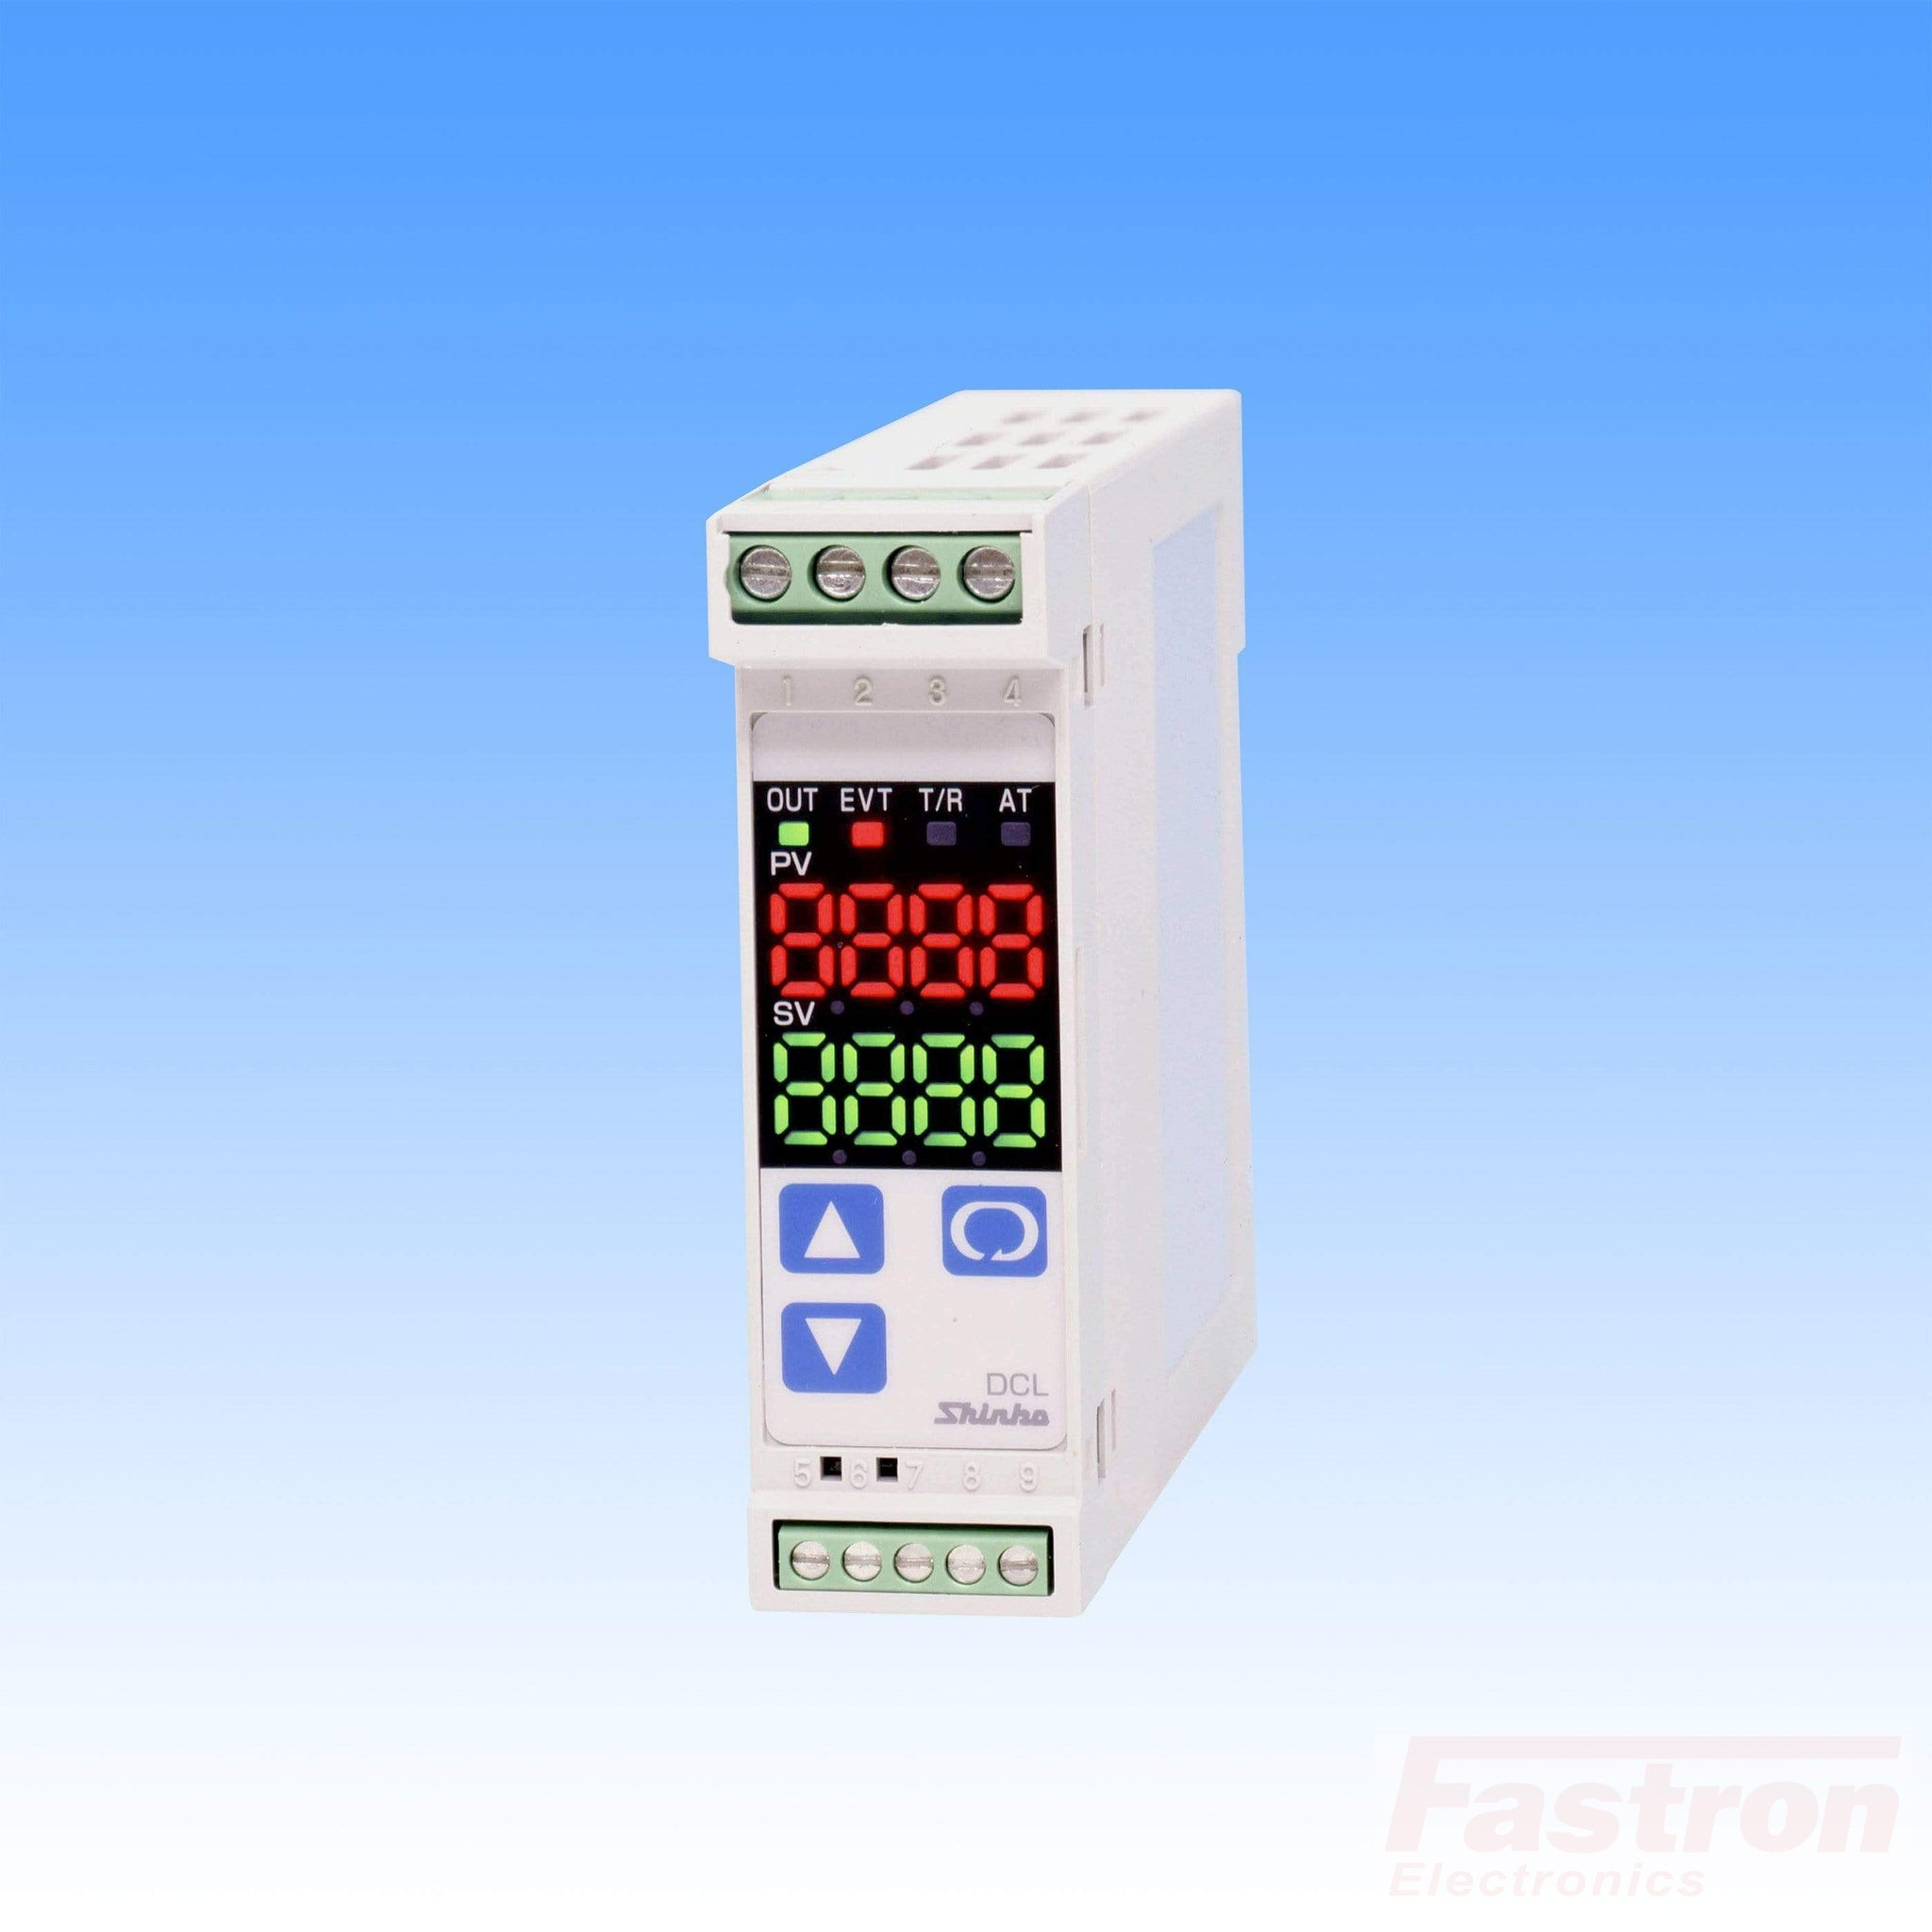 DCL33AA/M C5 SP05 Temp Controller, Din Rail, 240VAC, Relay output, Relay Alarm